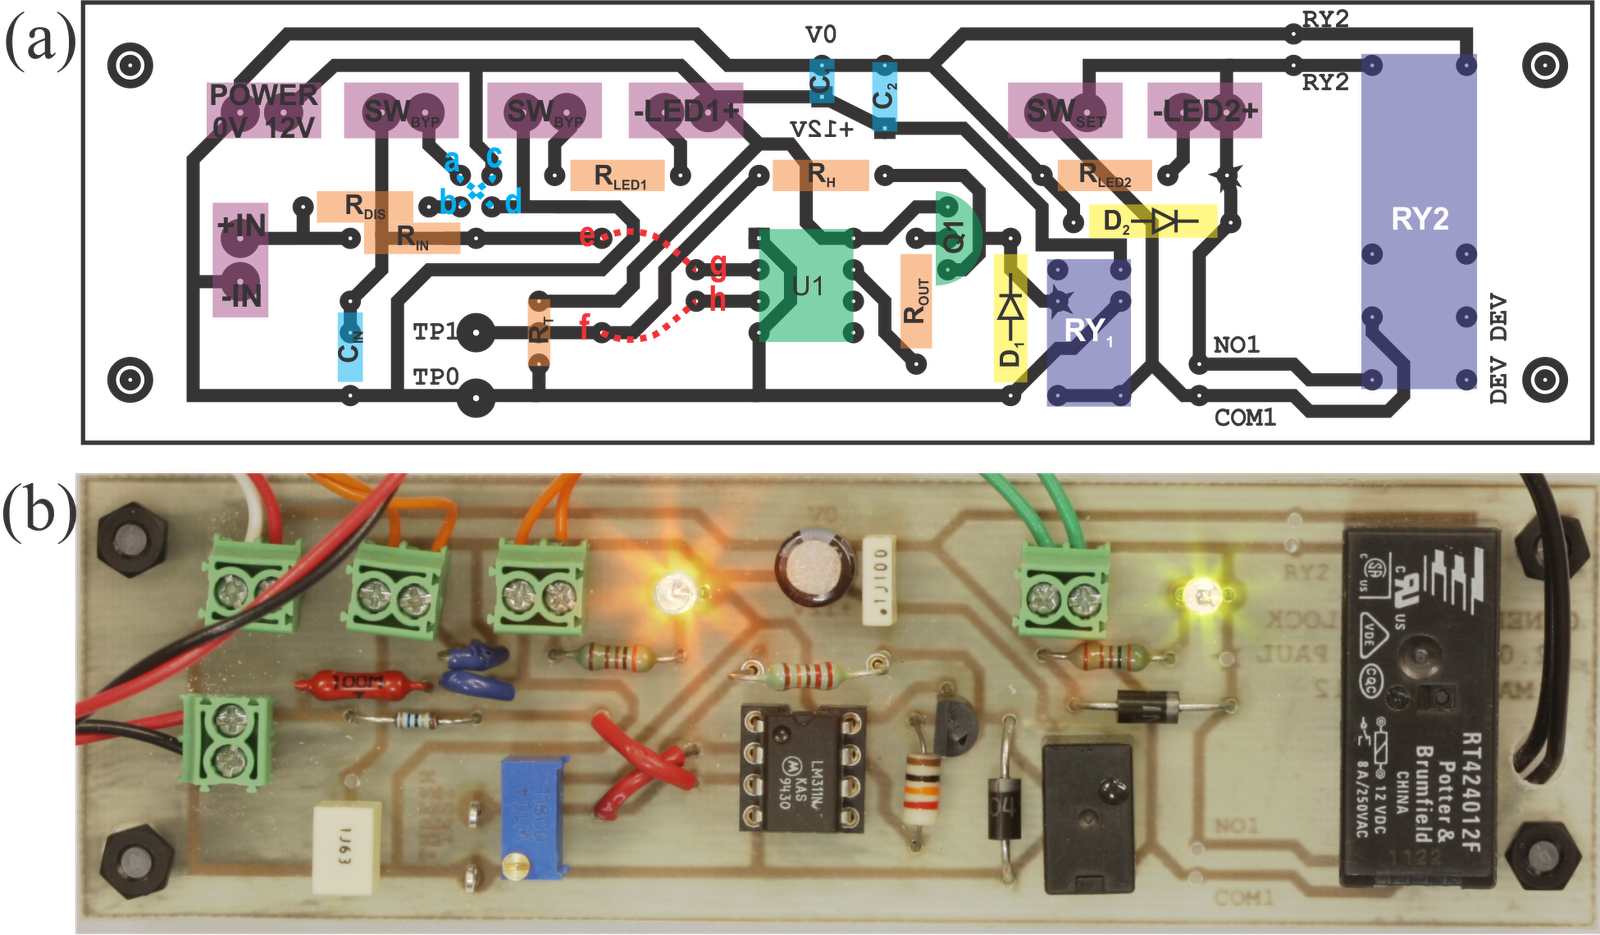 William Paul Figure 2 The Components Layout Of This Circuit Printed Board Actual Dimensions 36x122mm A Copper Traces Shown In Black With Component Overlay Normal Low Configuration